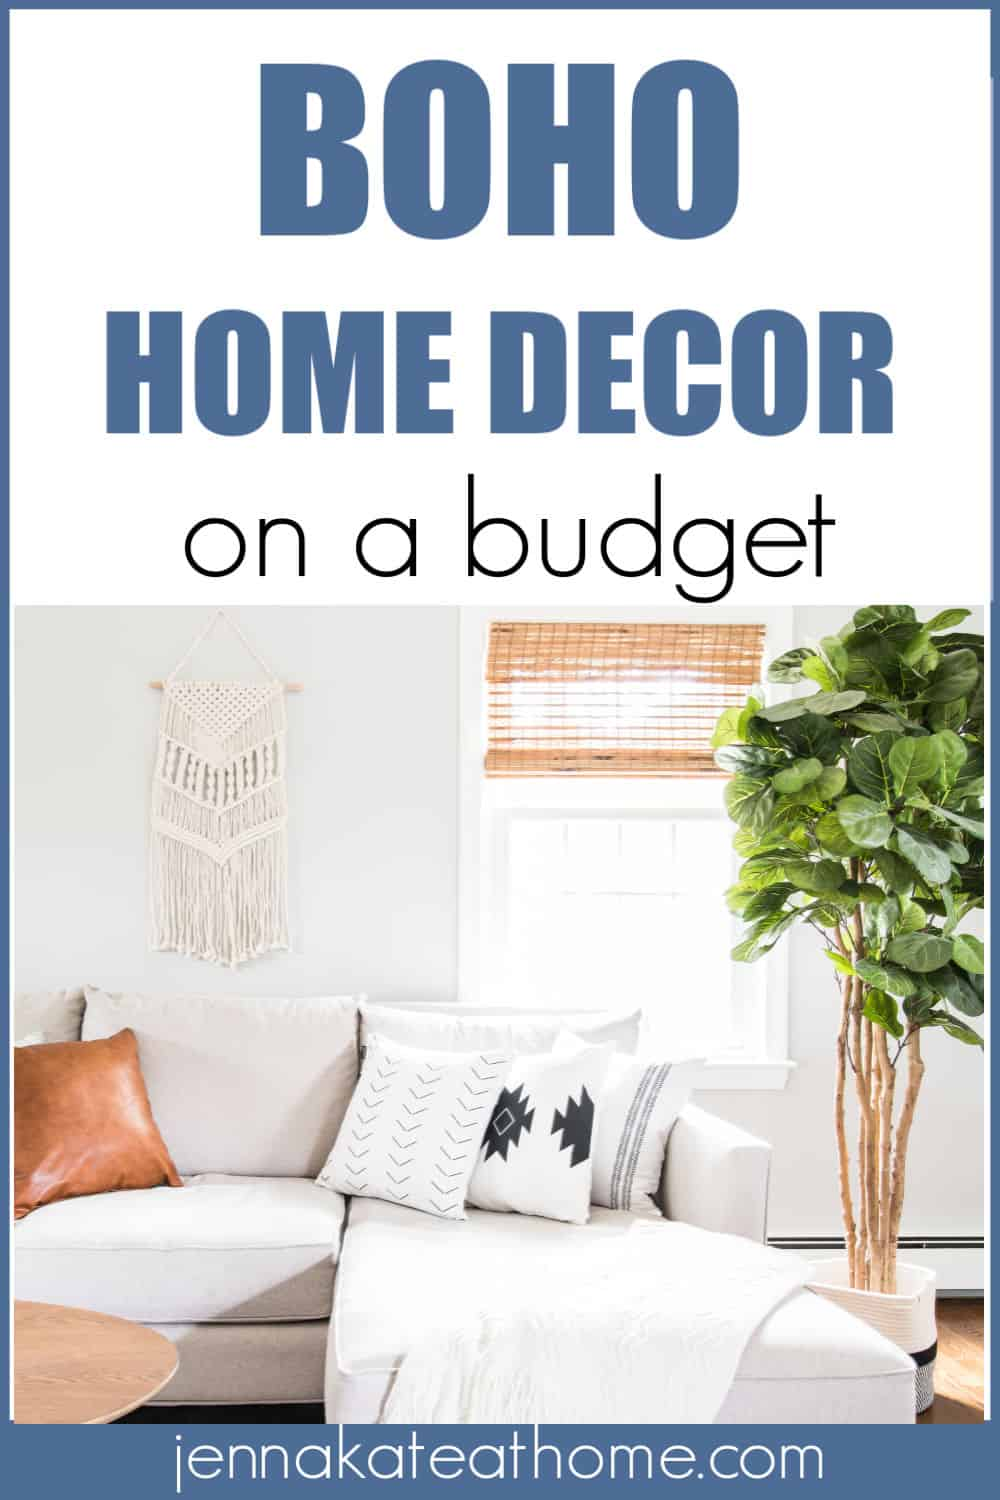 Bohemian home decor on a budget from Amazon